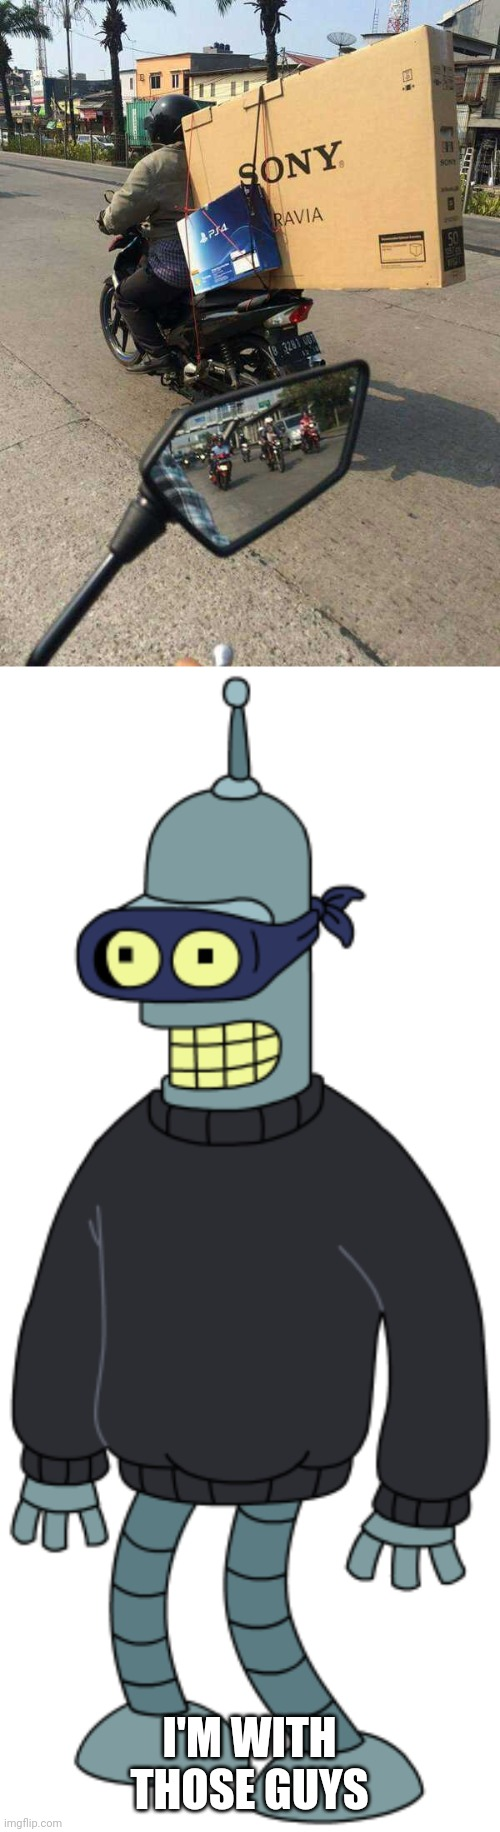 GONNA HAVE A PS4 AND A NEW TV SOON |  I'M WITH THOSE GUYS | image tagged in memes,bender,stealing,ps4 | made w/ Imgflip meme maker